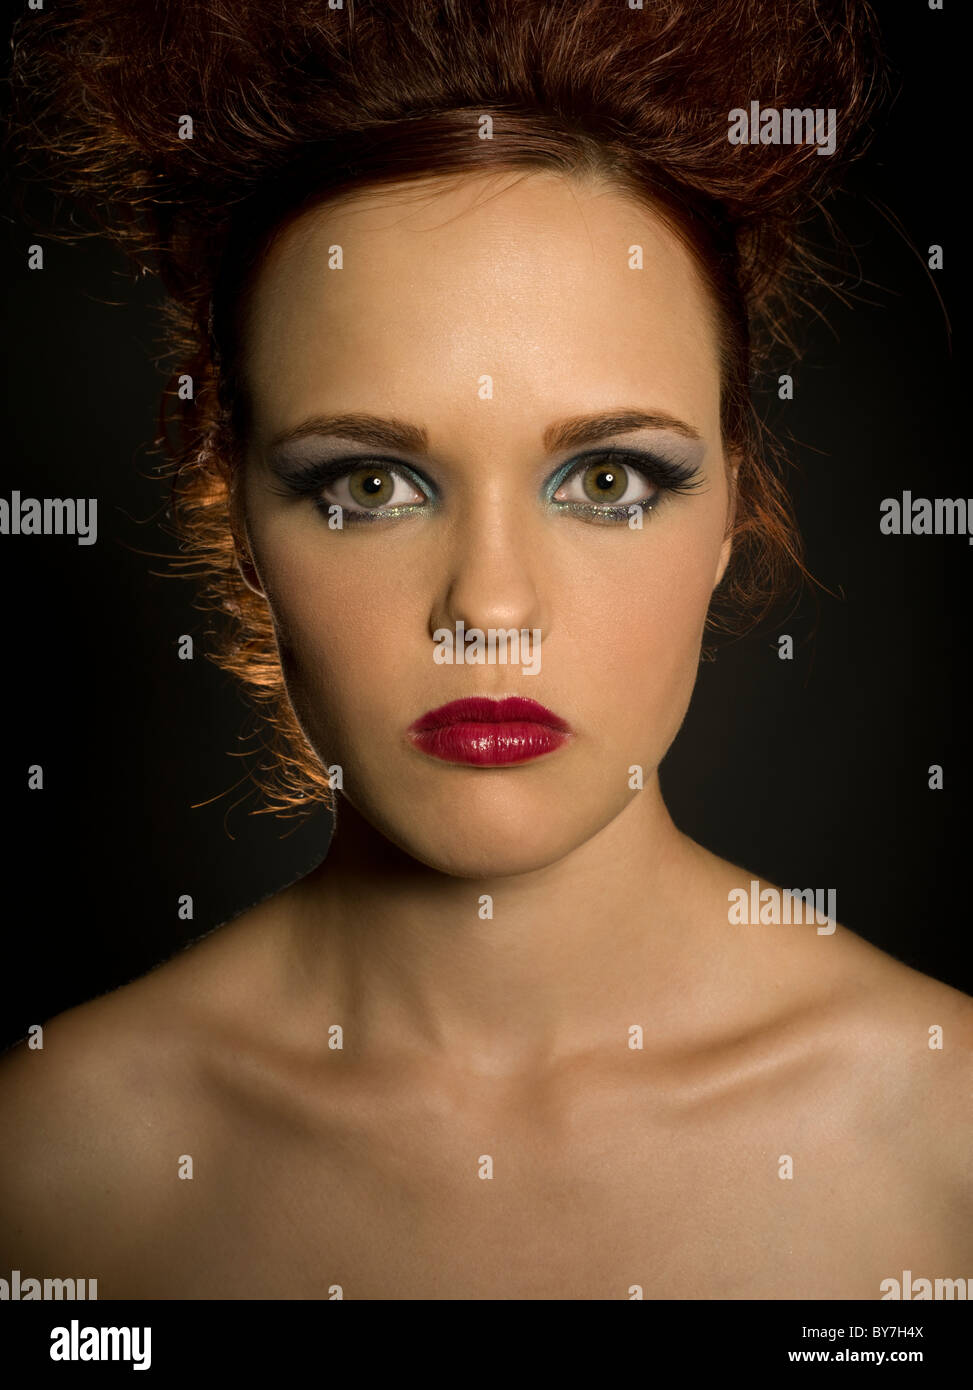 Red Queen portrait - serious, unsmiling, frowning, severe, forbidding, grim, unfriendly, austere, dour, stony, flinty, - Stock Image